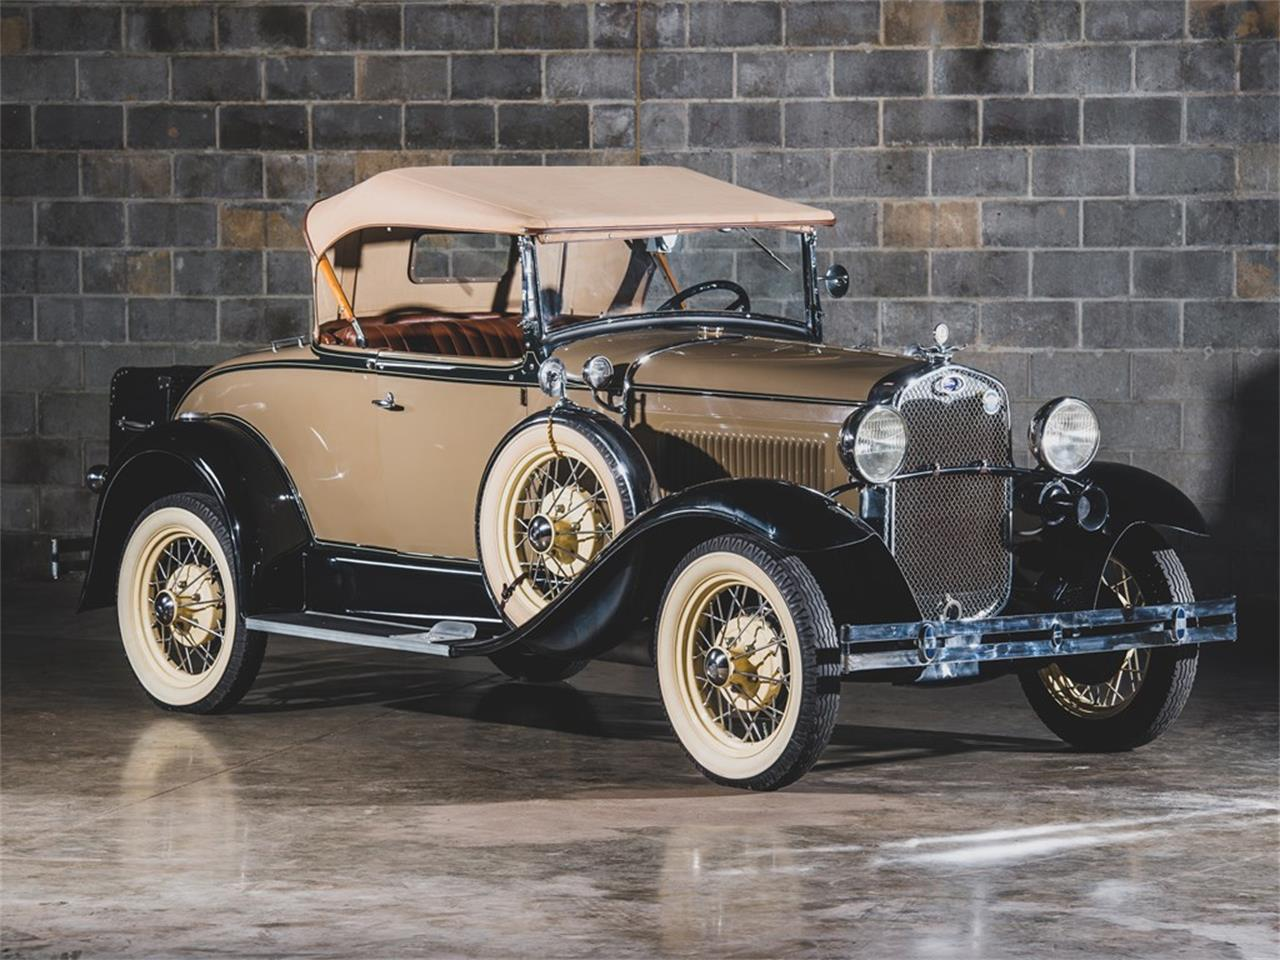 Large Picture of Classic 1930 Ford Model A DeLuxe Roadster Auction Vehicle Offered by RM Sotheby's - PMMS